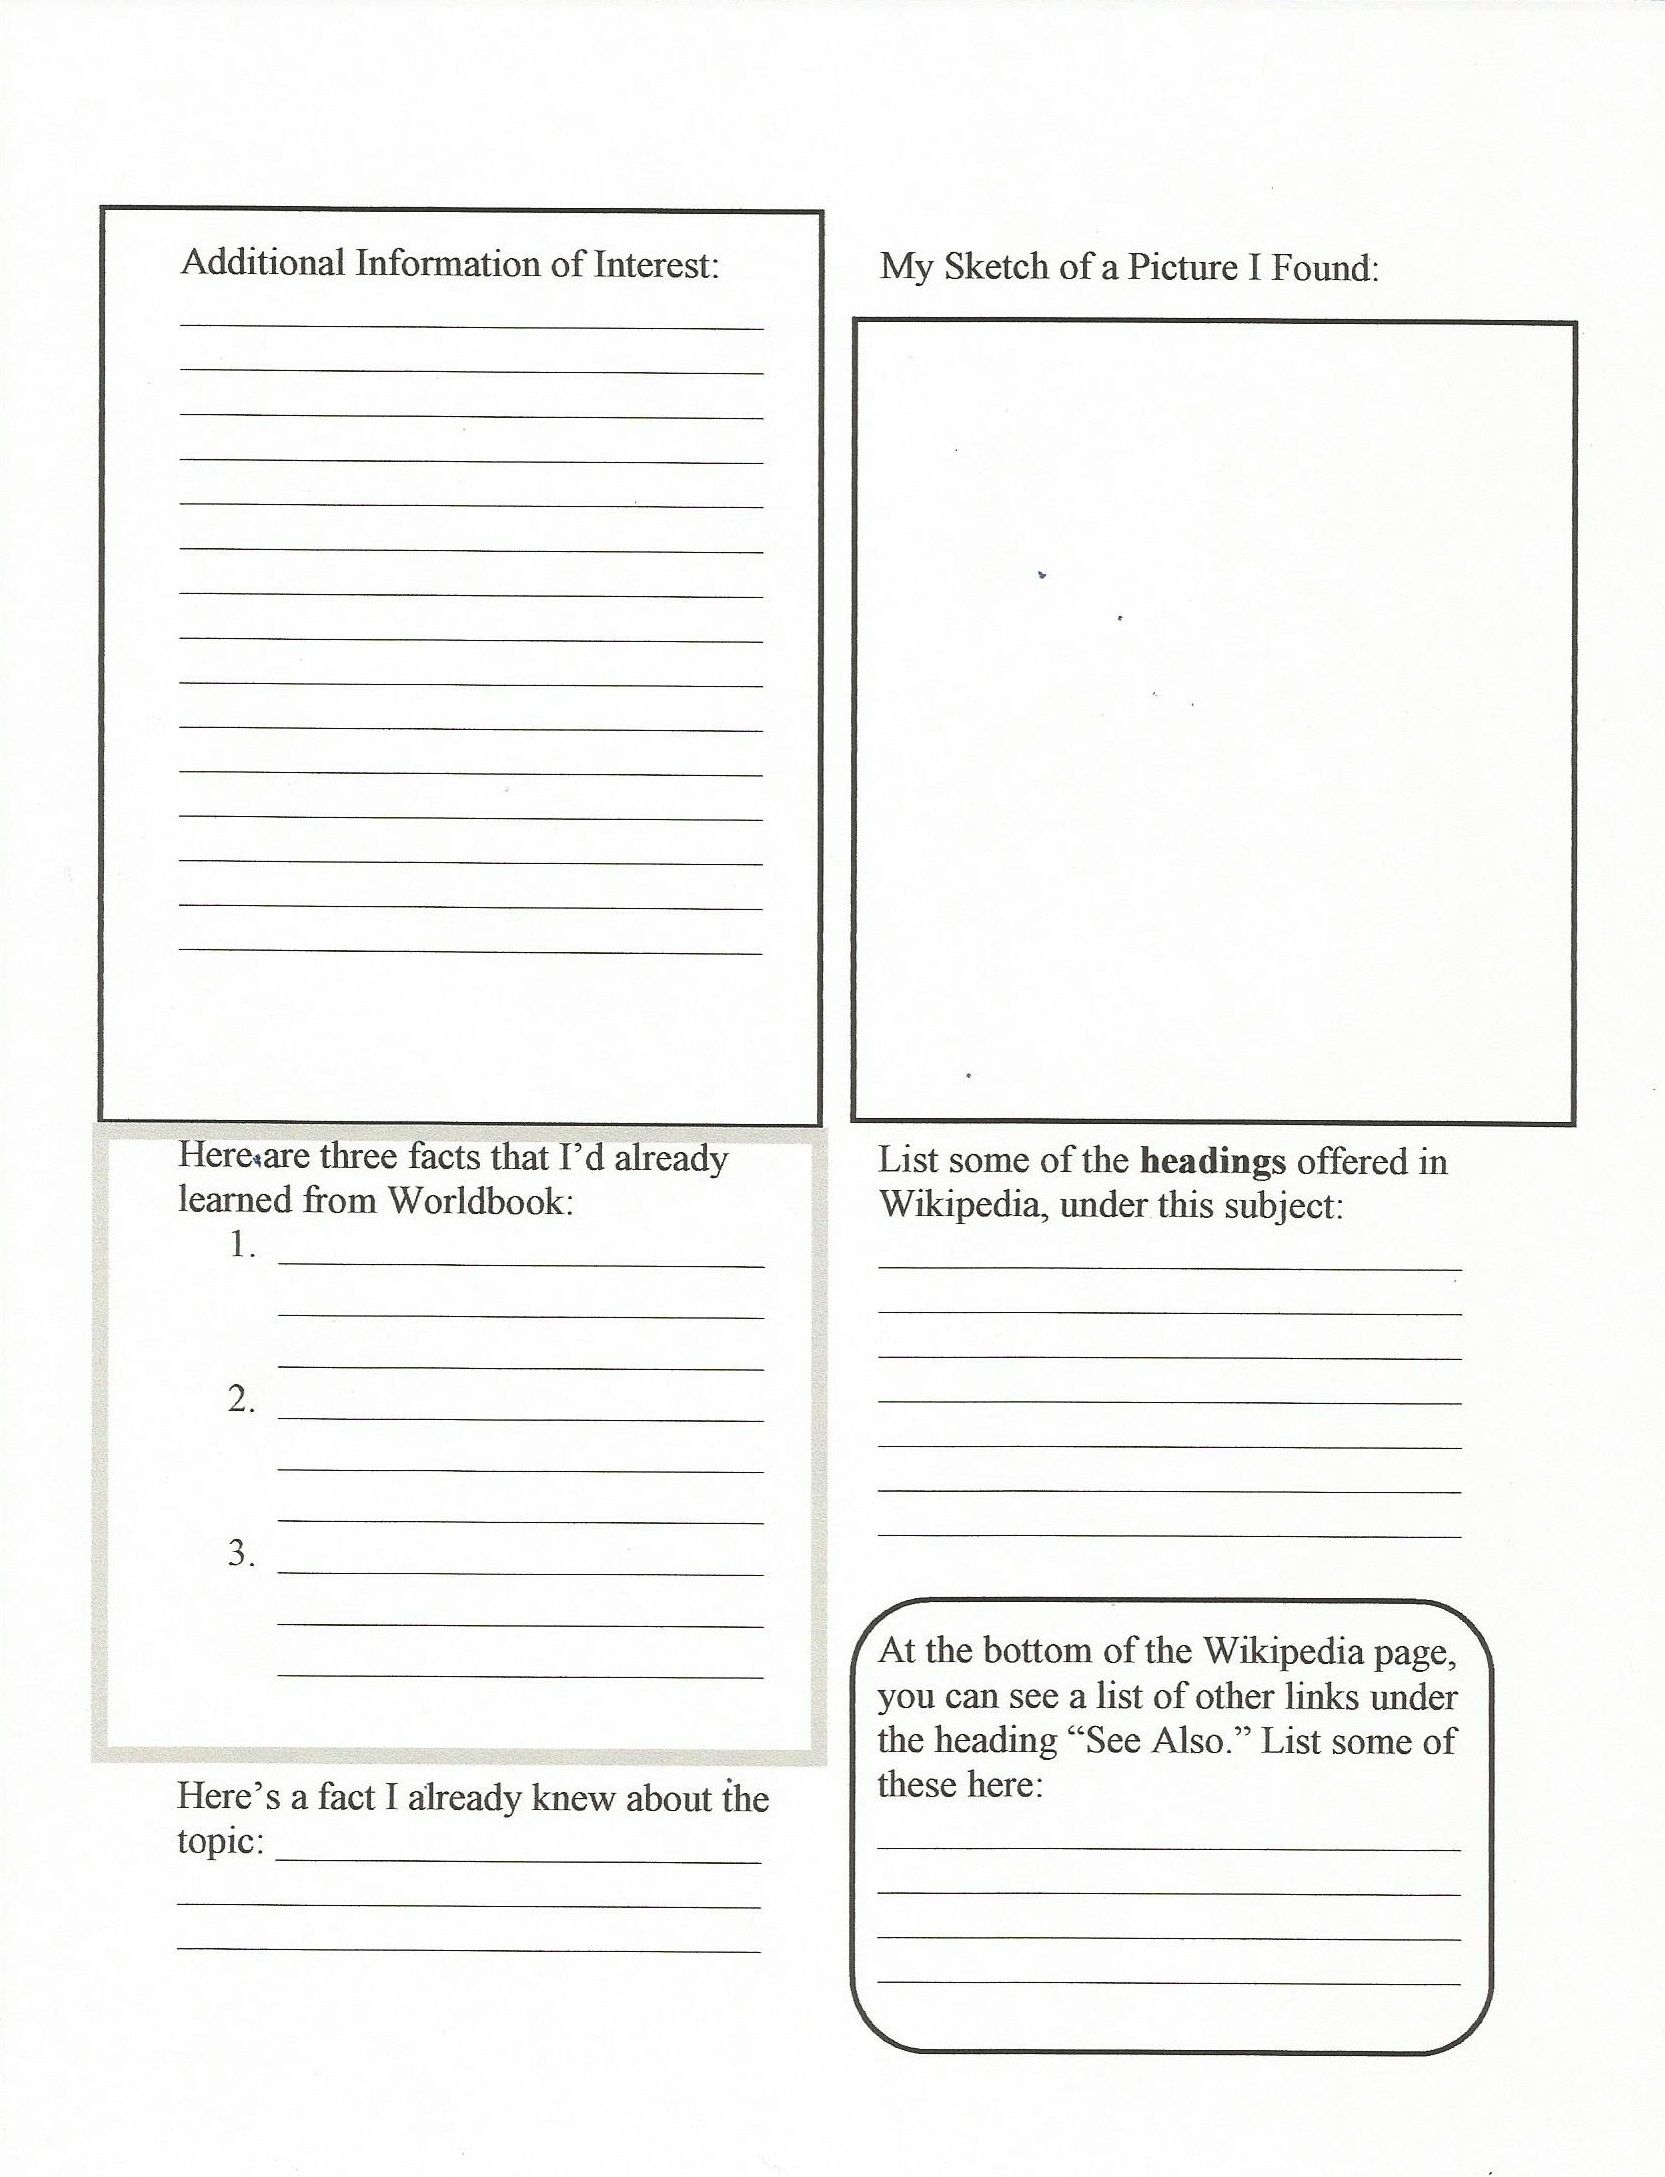 worksheet Free Worksheets Middle School citing wikipedia middle school handout worksheet pg 2 comes from my educational website englishemporium